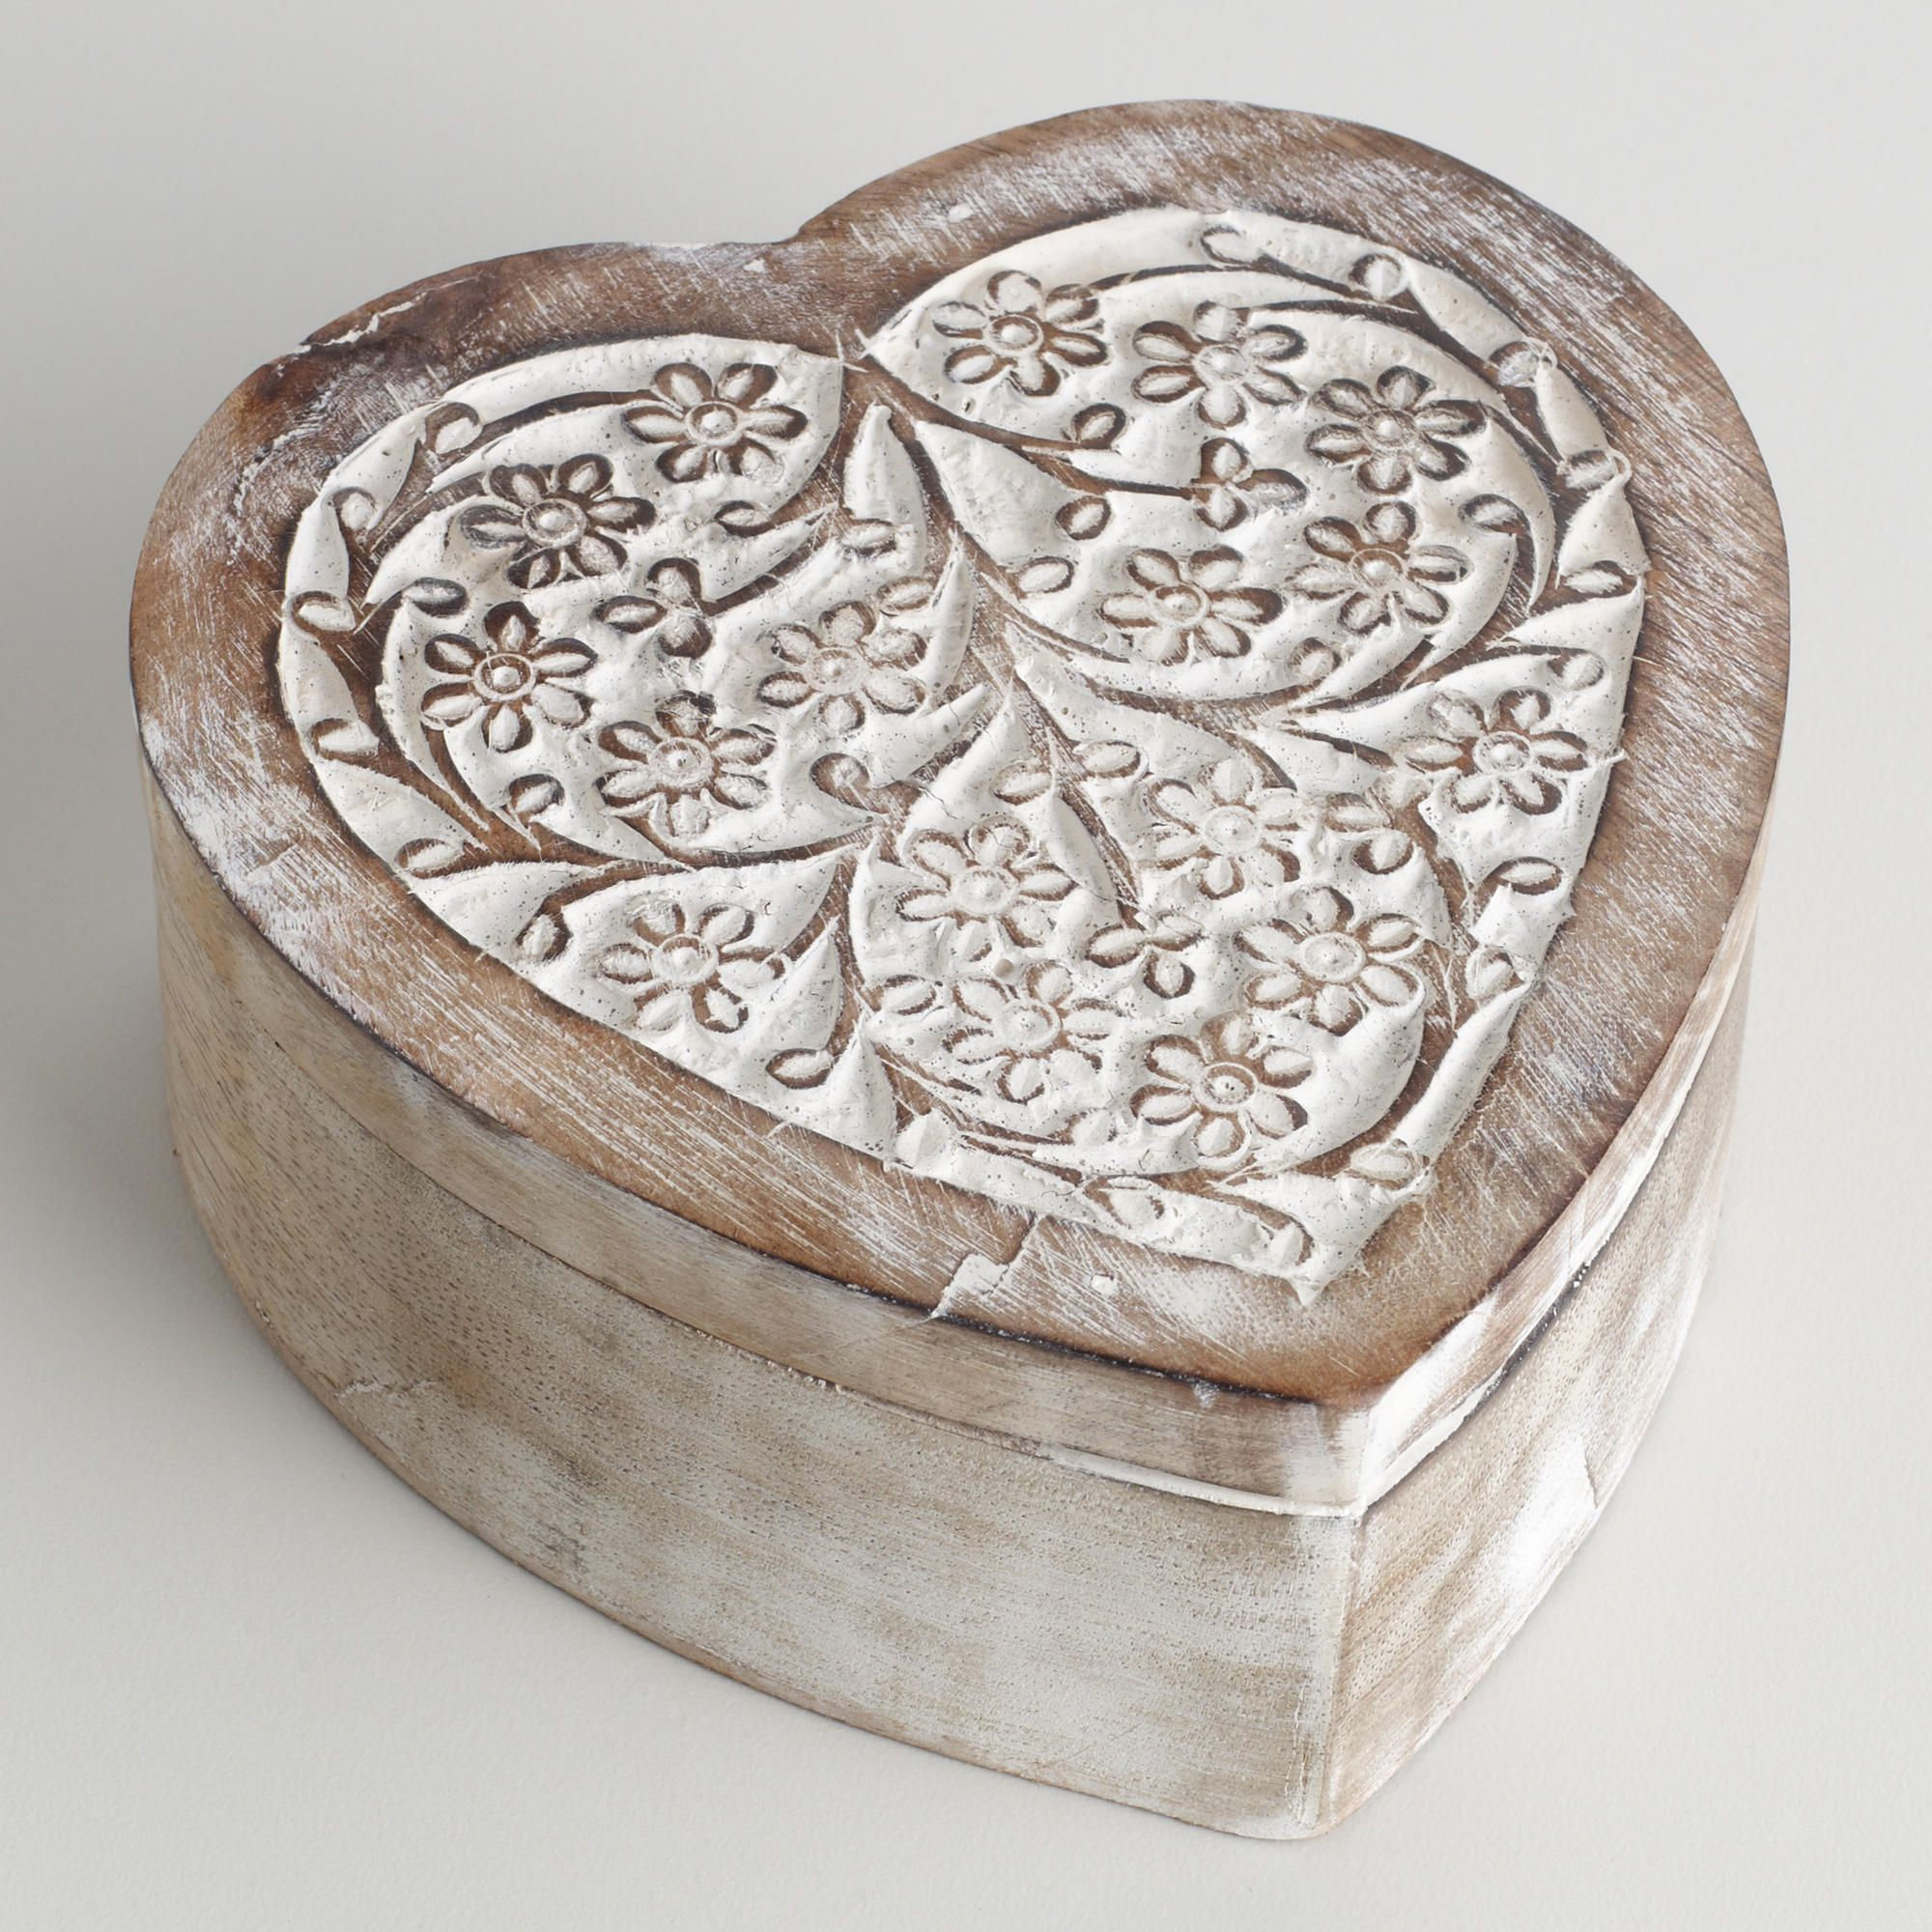 World Market Jewelry Box Amusing Whitewash Helena Heart Jewelry Box  World Market  Finishing Decorating Inspiration